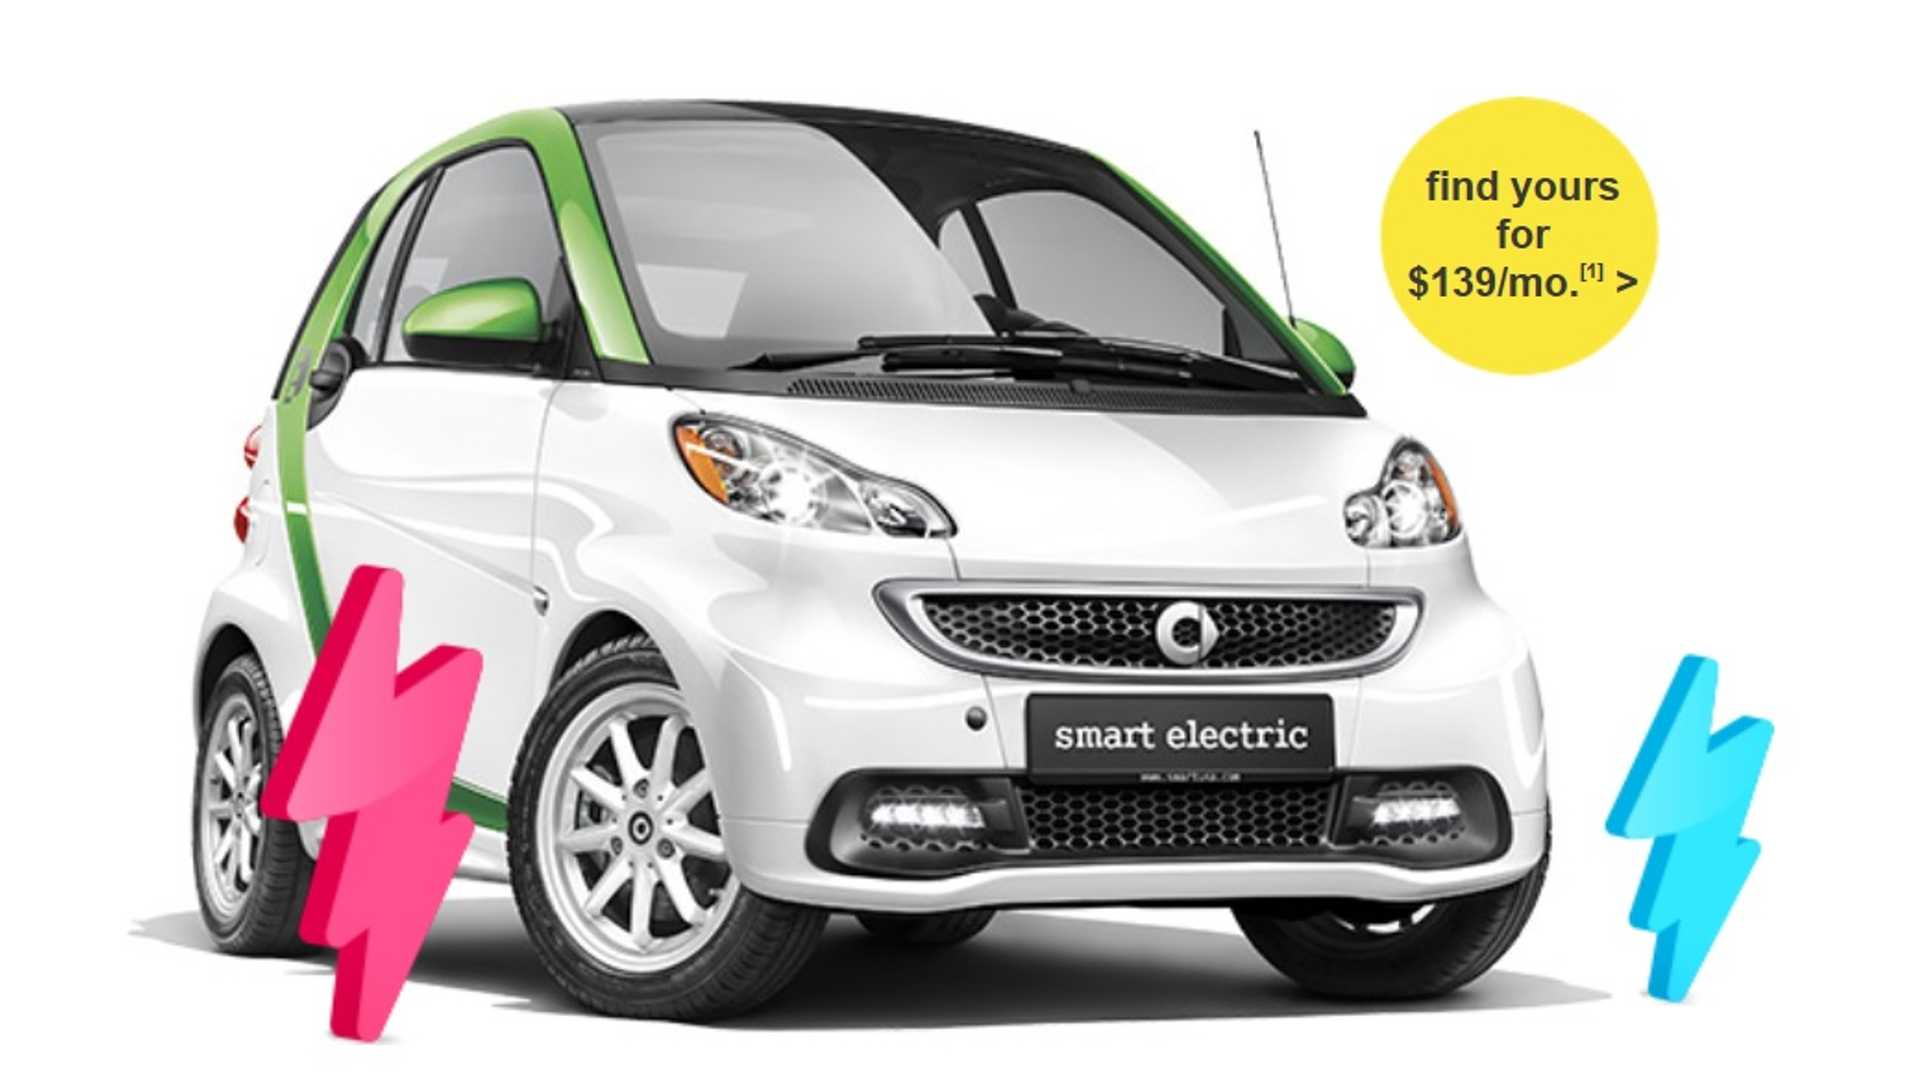 Kbb Fiat 500e Smart Fortwo Ed And Nissan Leaf Expected To Depreciate The Most Out Of All Automobiles Available Today Insideevs Photos